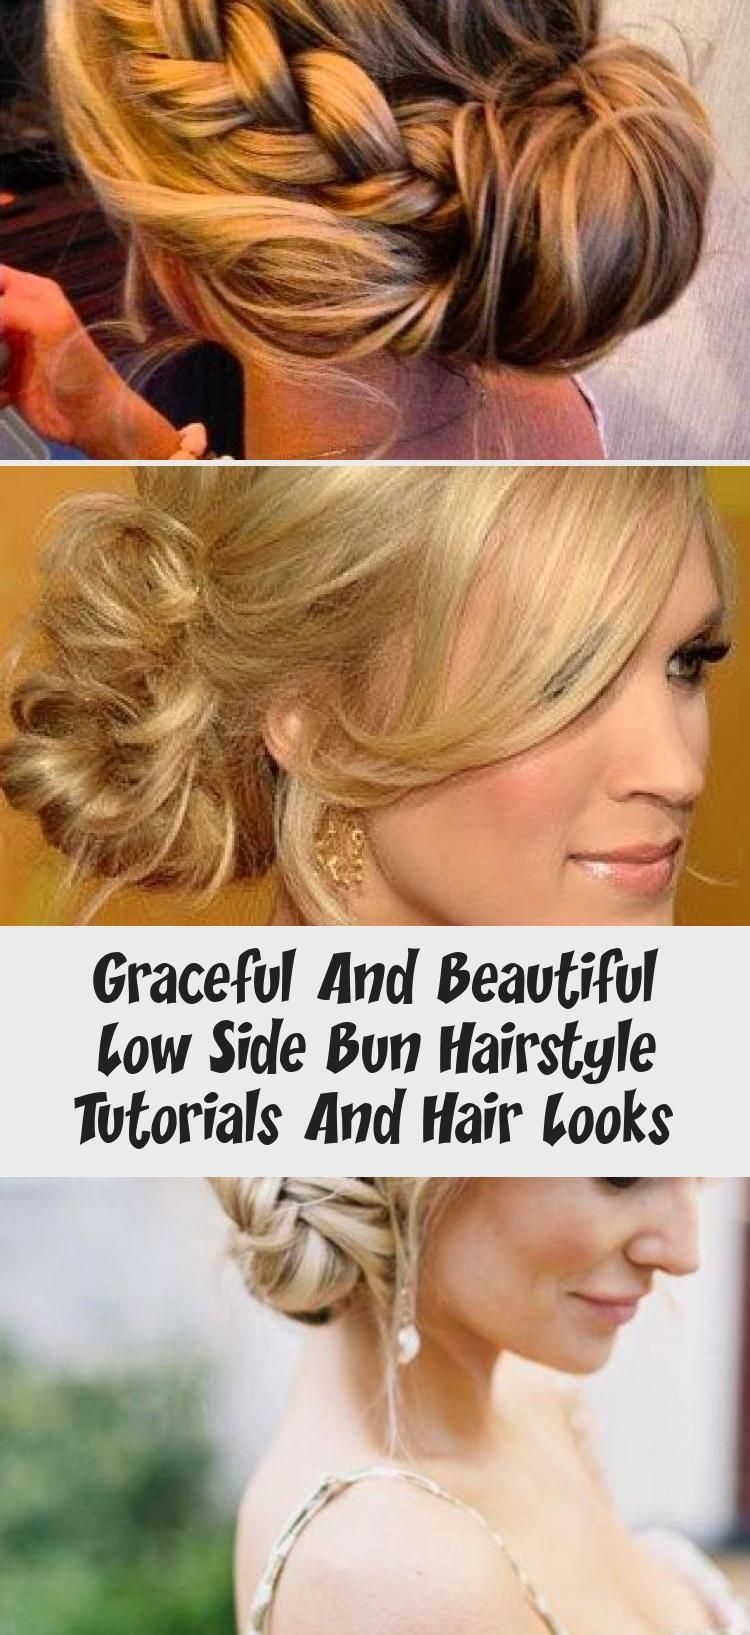 Graceful And Beautiful Low Side Bun Hairstyle Tutorials And Hair Looks #lowsidebuns